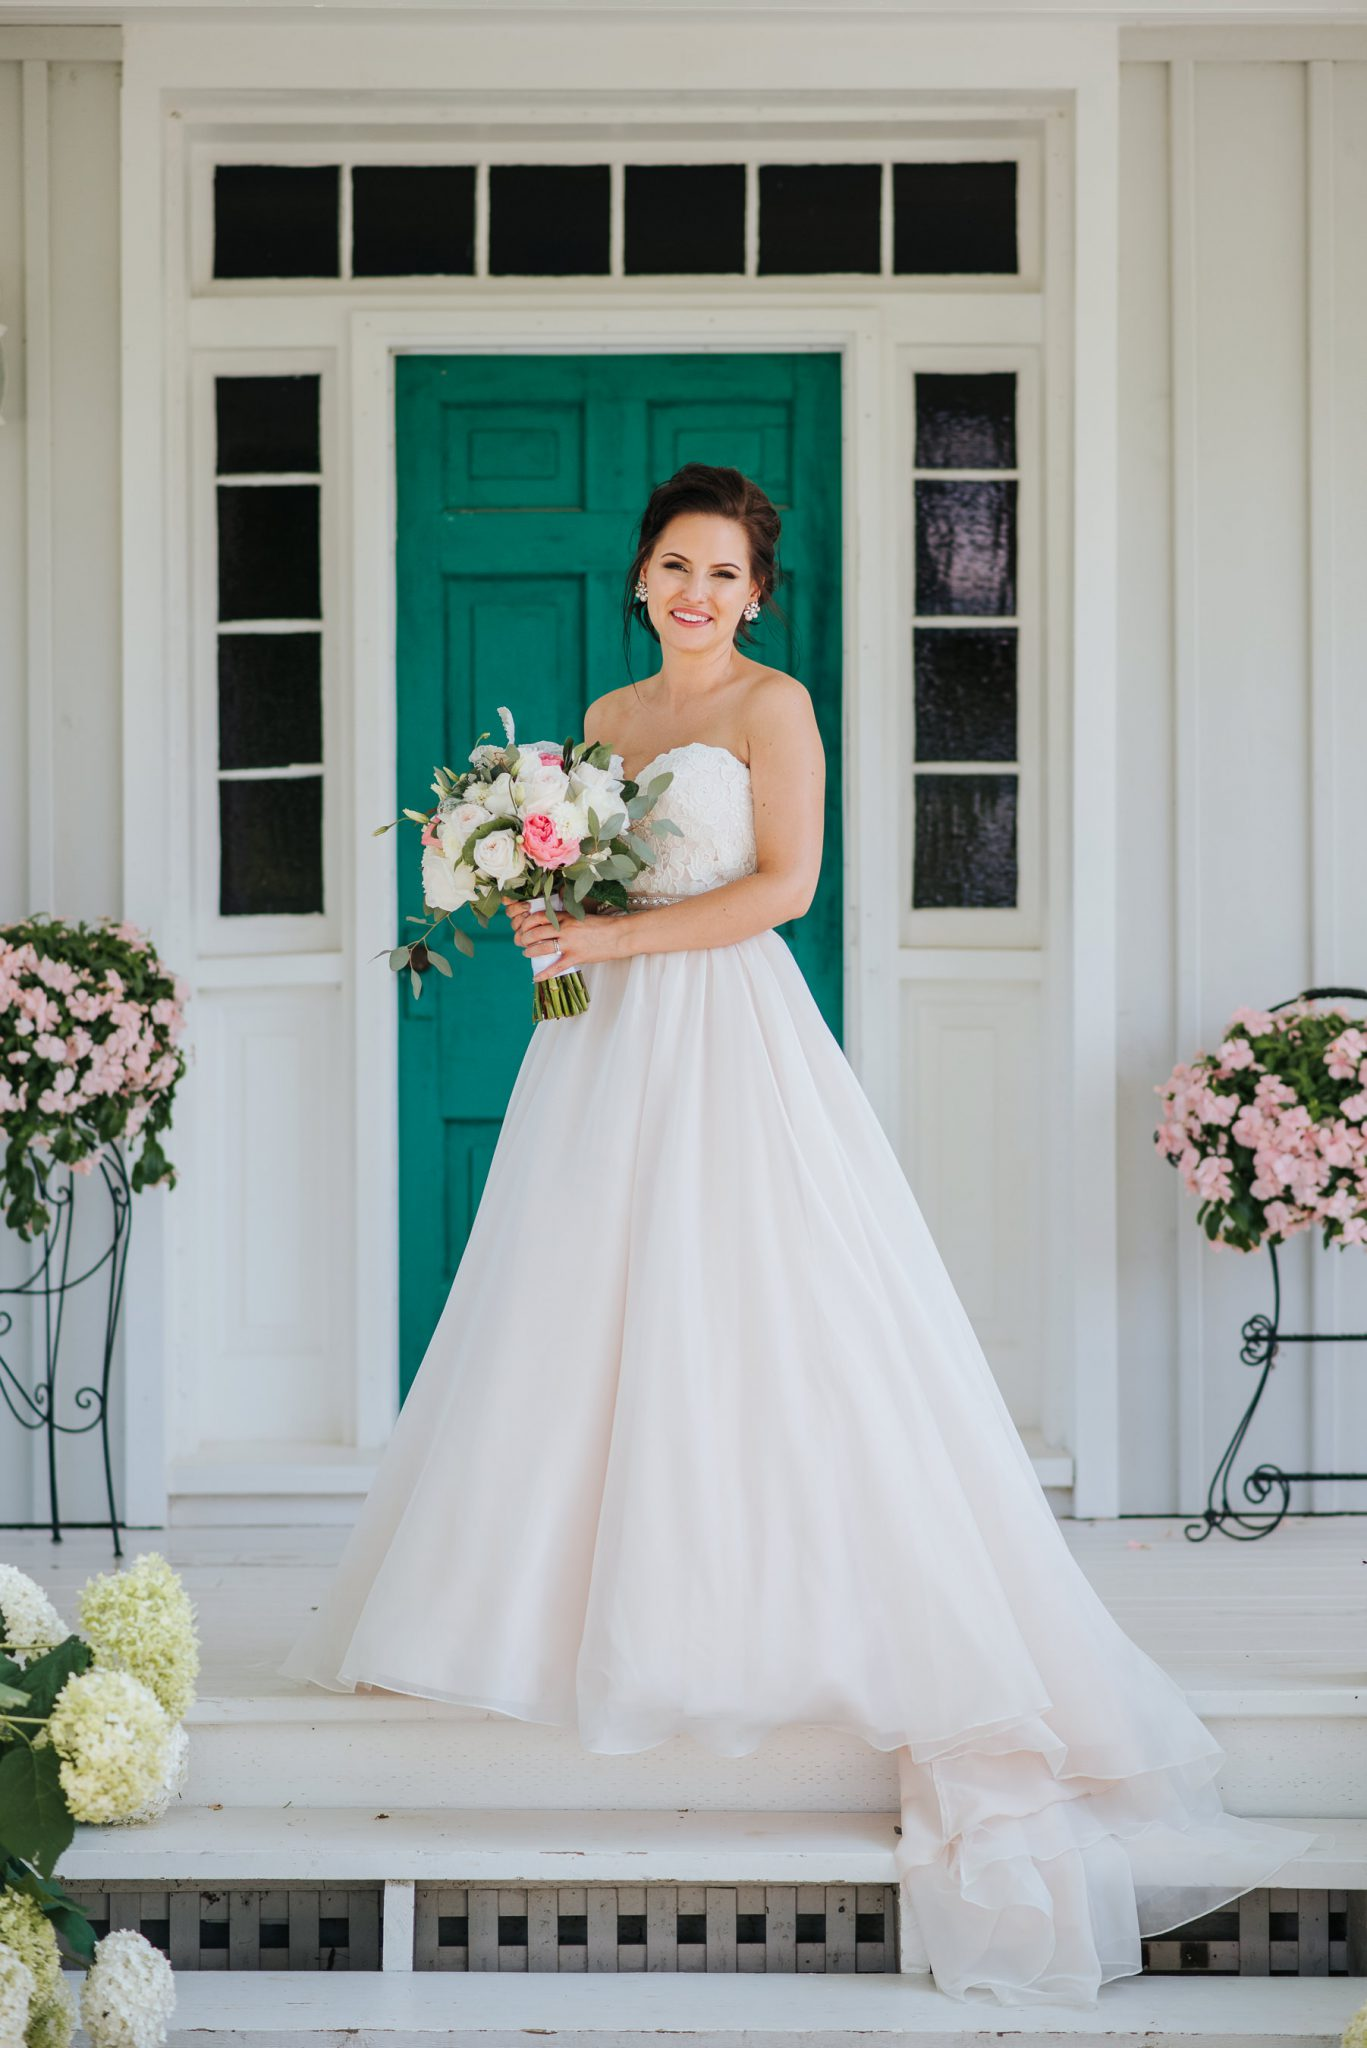 Bloomfield Gardens Wedding - bride in teal doorway